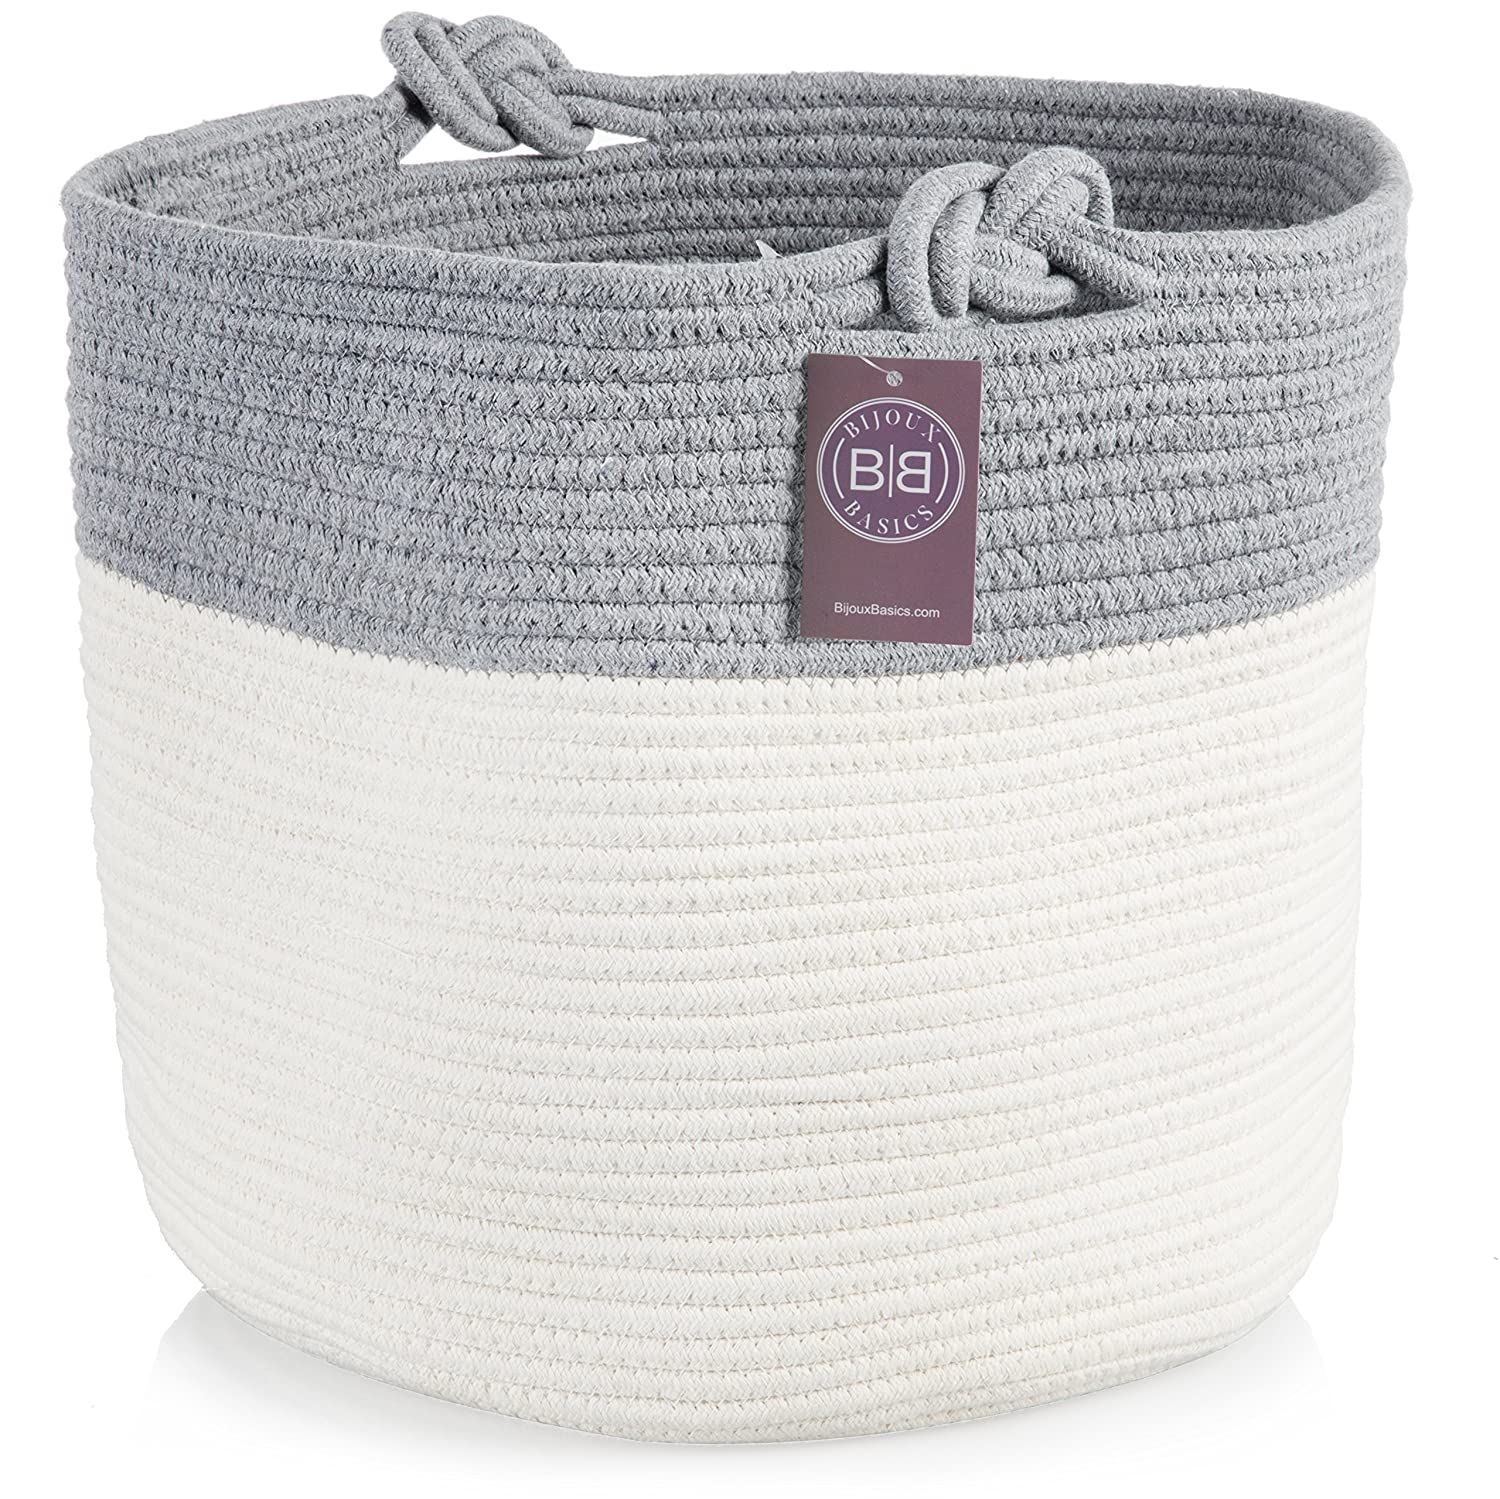 Bijoux Basics Round Woven Cotton Rope Basket: Large Basket for Nursery/Laundry/Gift/Kids Toy Storage/Organizer for Baby Boys or Girls Room Family Friendly Products